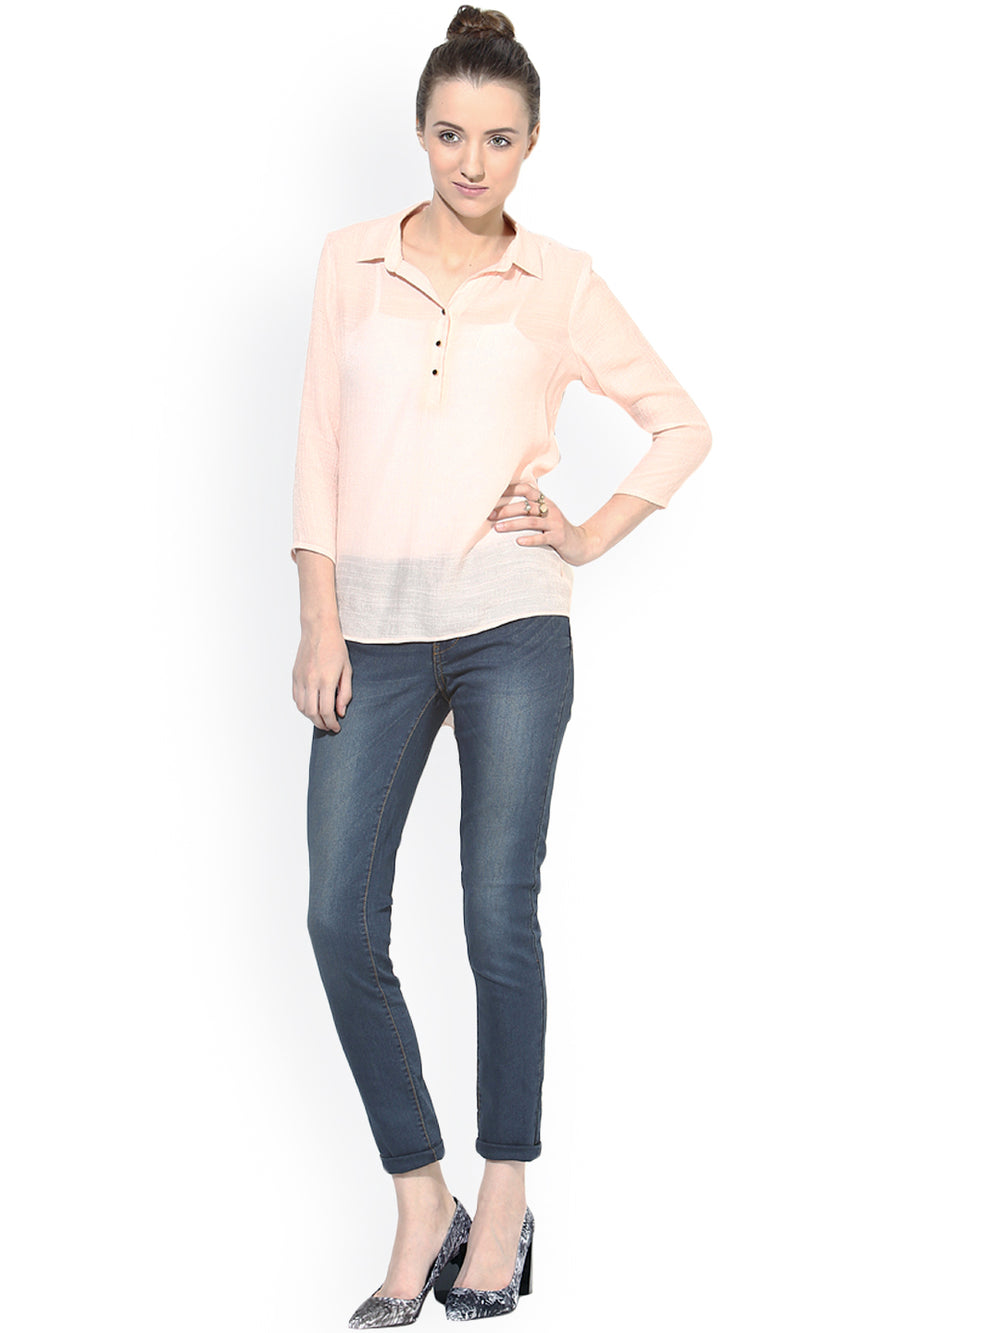 Besiva Pink Top